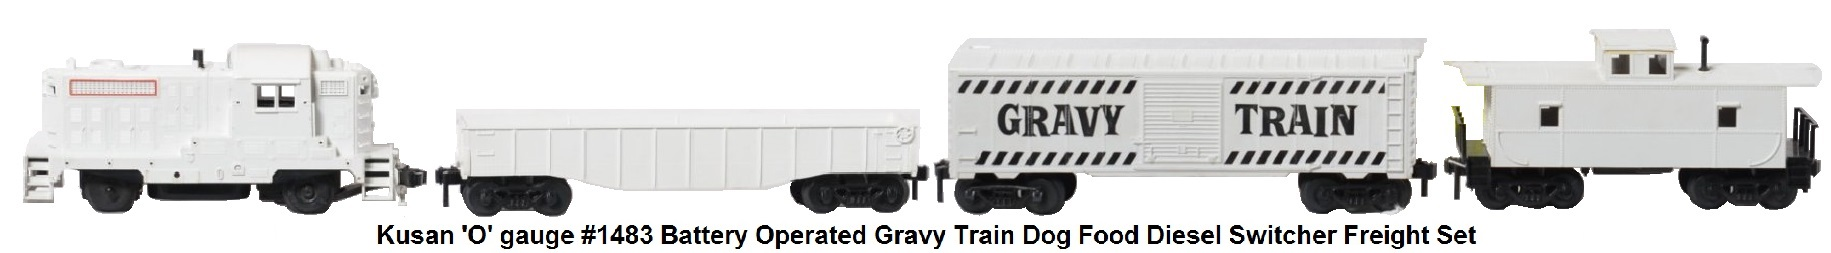 Kusan 'O' gauge #1483 battery operated Gravy Train diesel switcher freight set